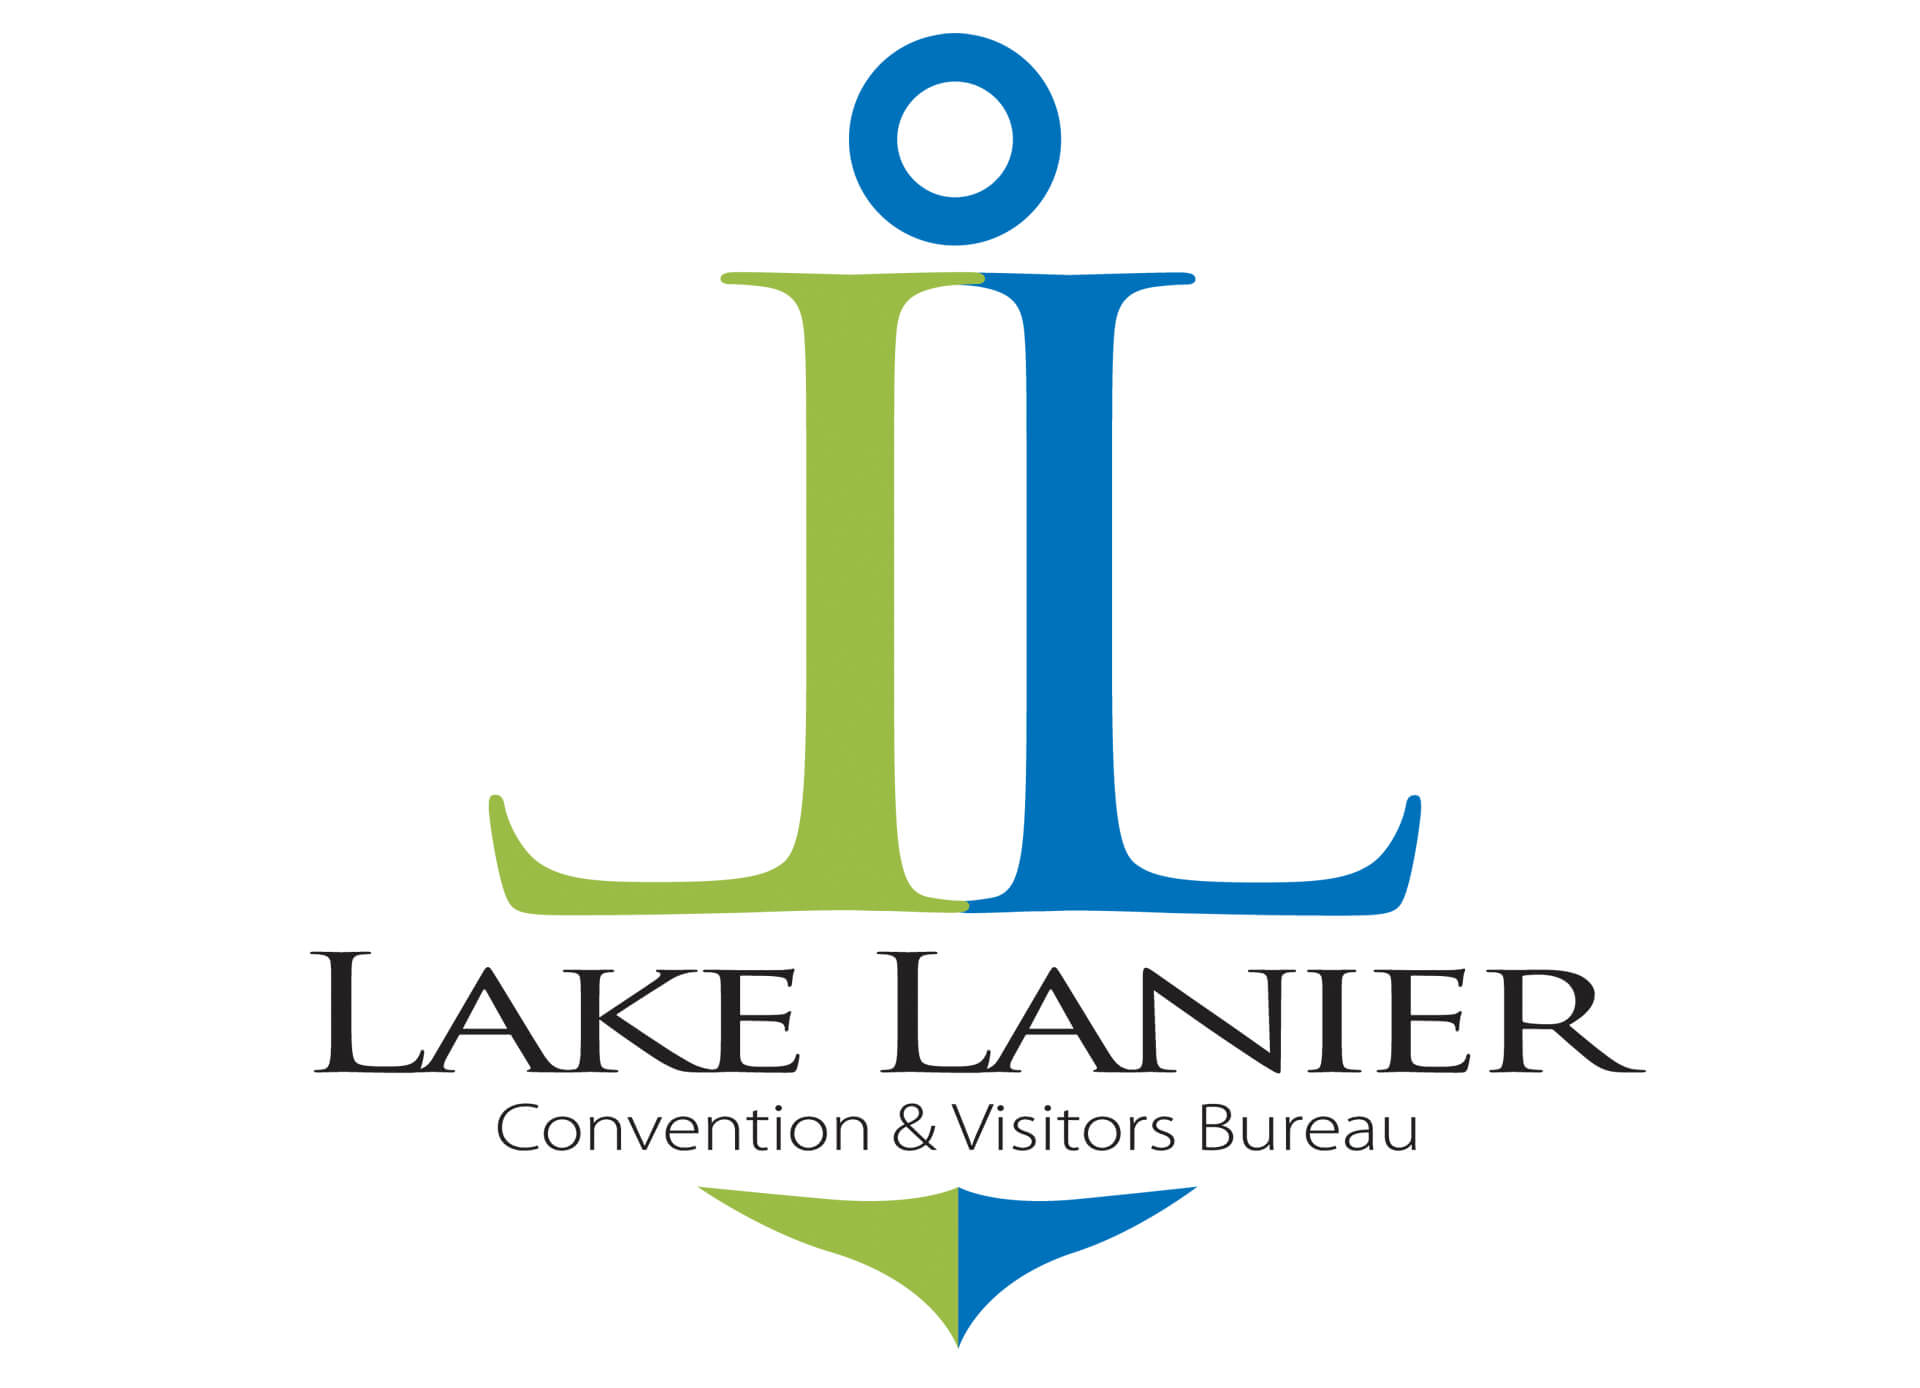 Lake Lanier Convention Visitors Bureau Logo